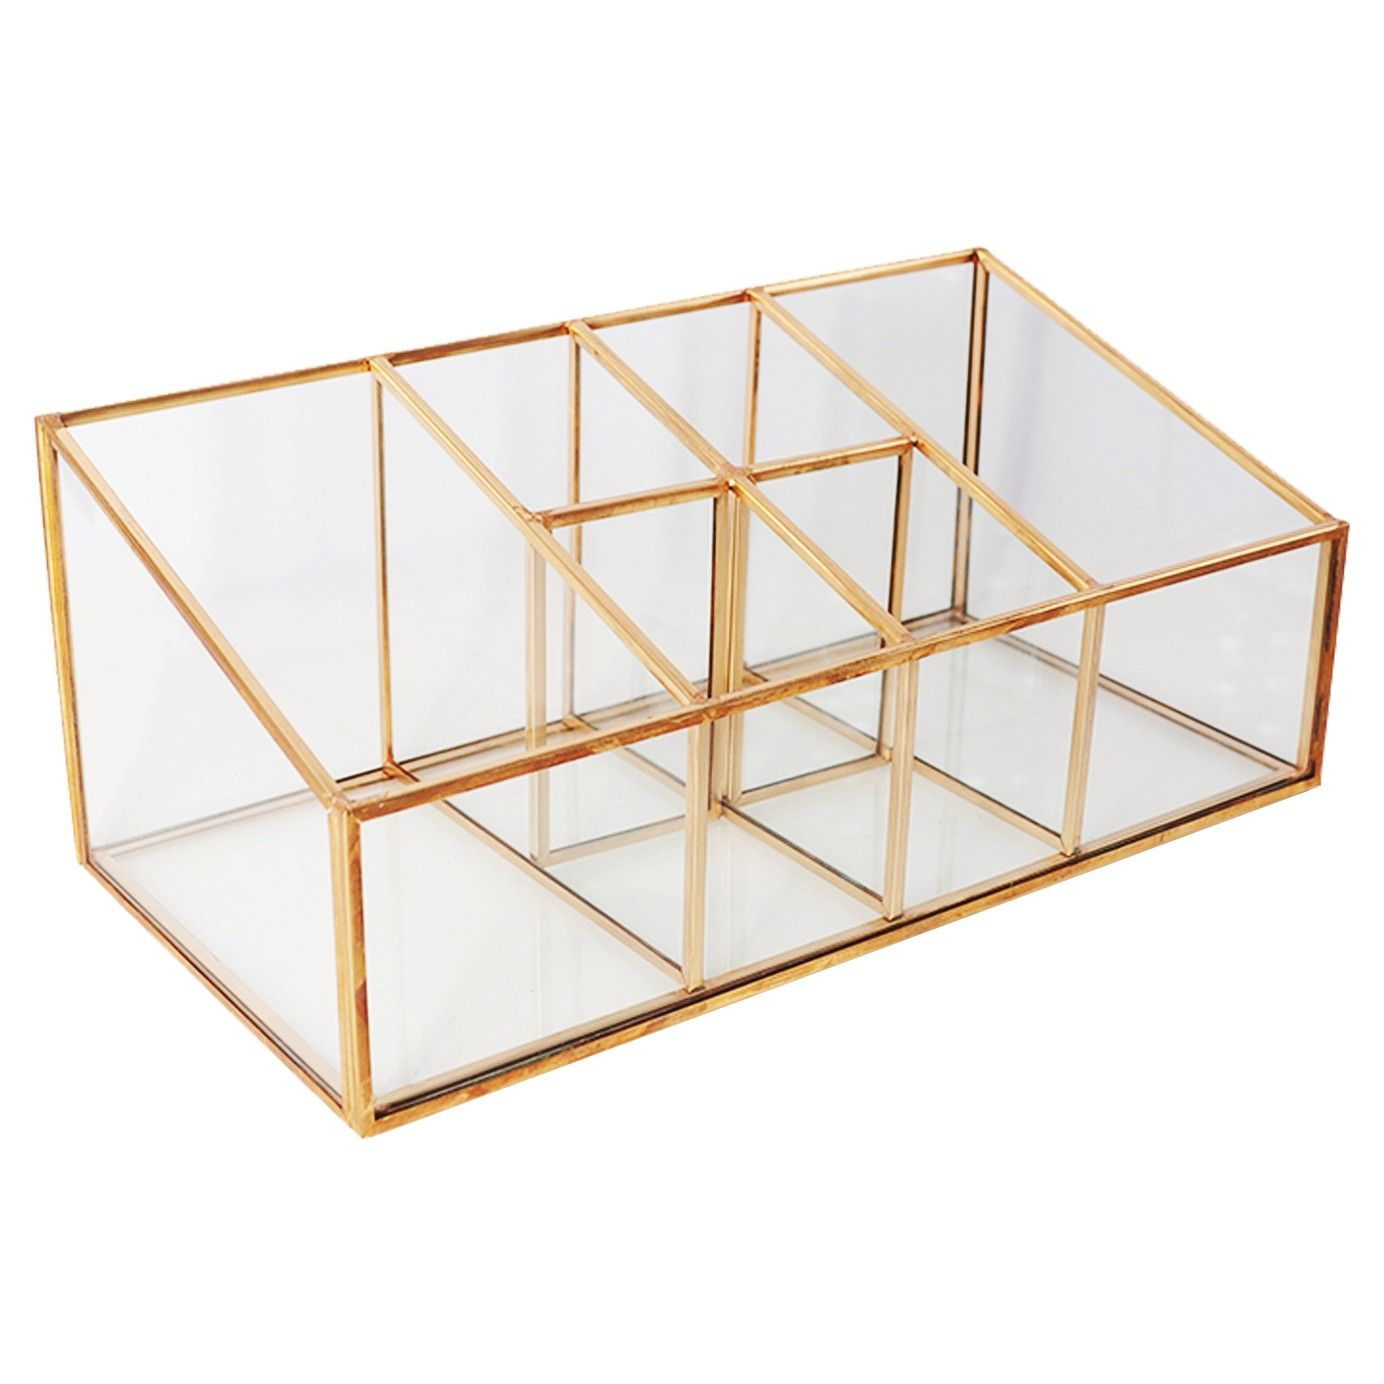 Rich Glass Construction Br Clear Design With Brilliant Gold